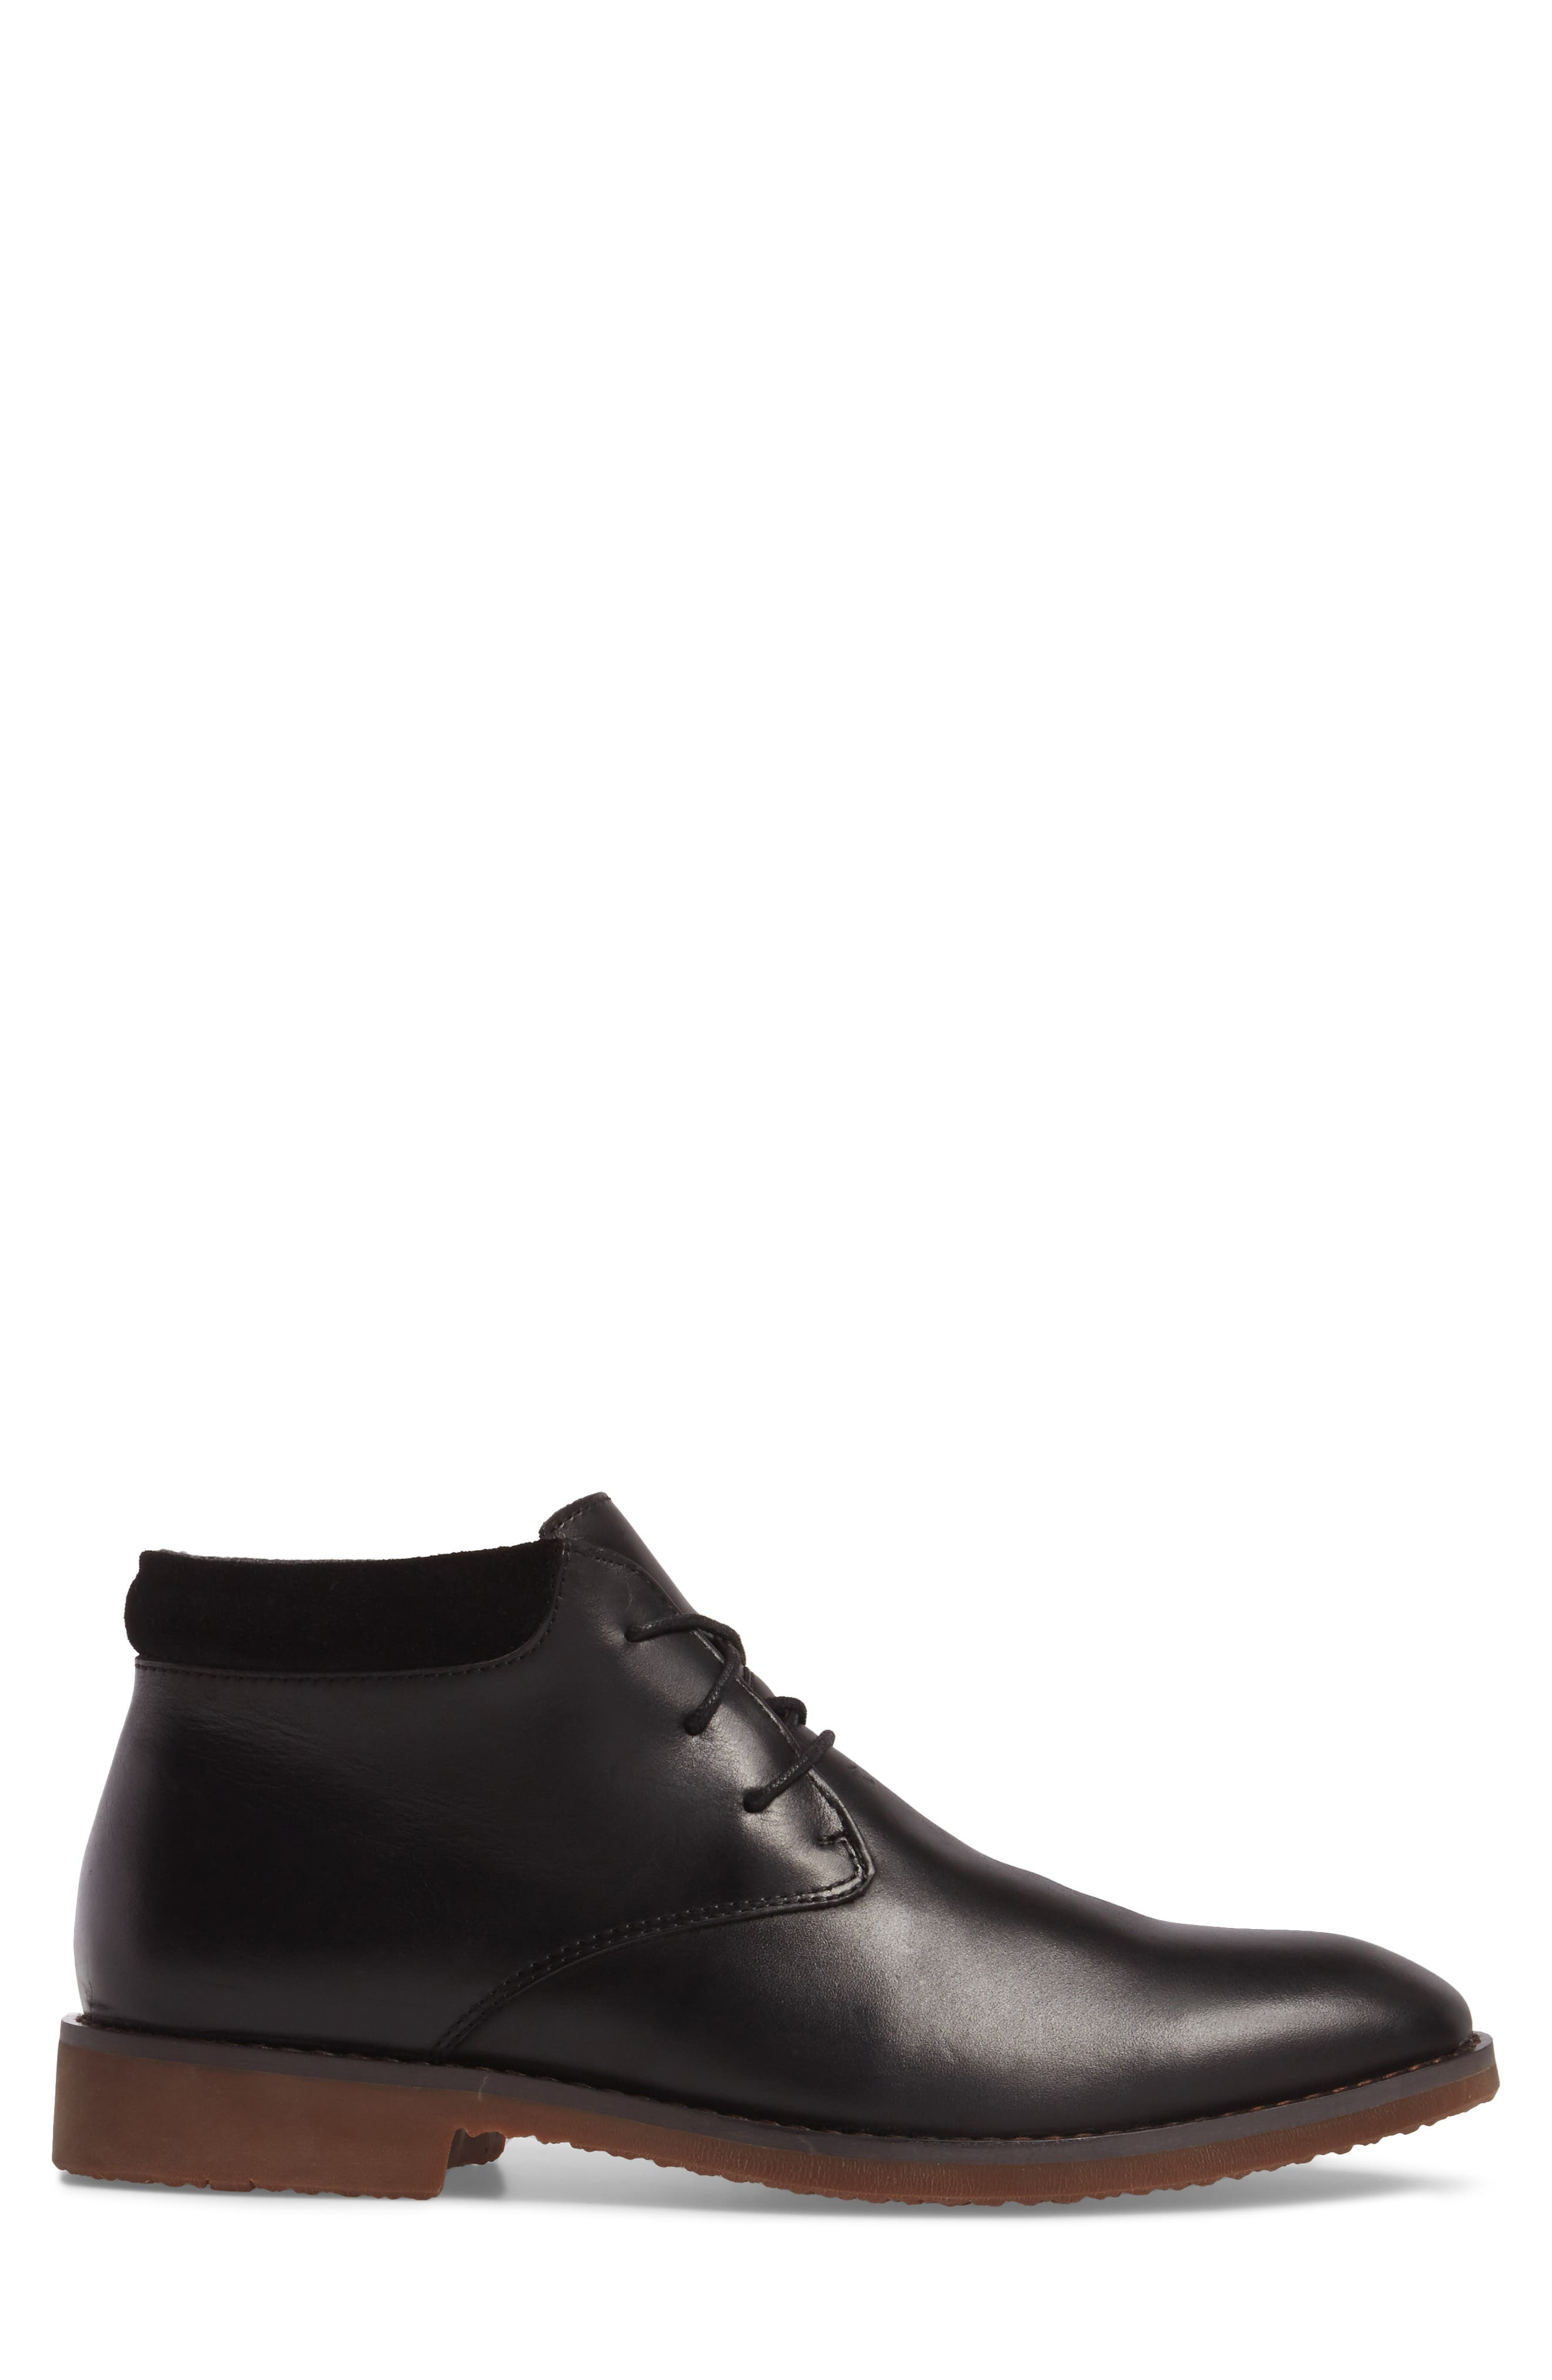 Alternate Image 3  - English Laundry Talbot Chukka Boot (Men)